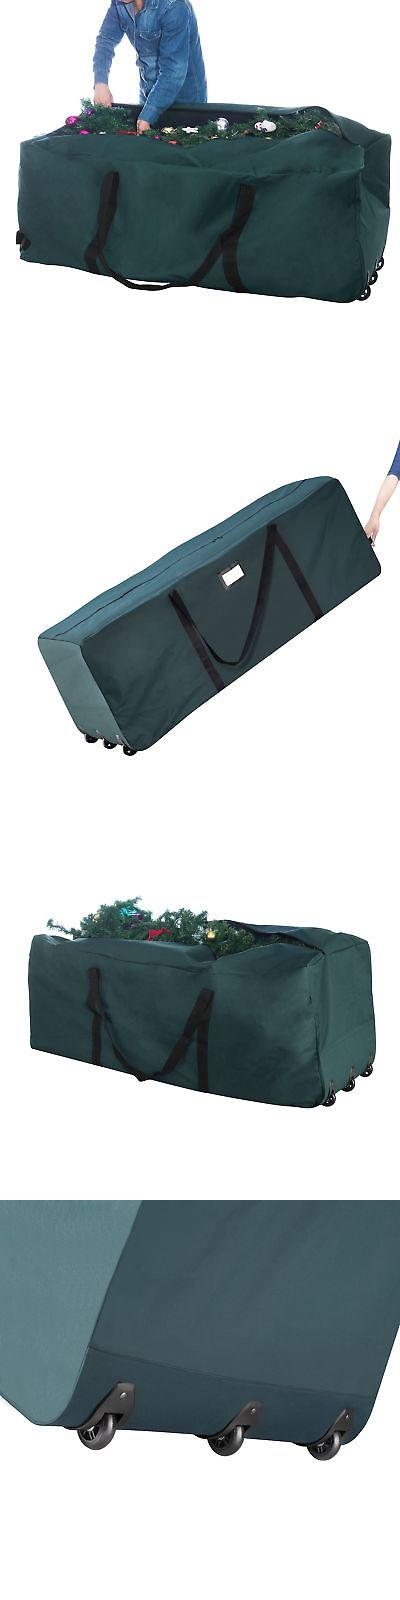 Tree Stands Skirts And Storage 166726 Christmas Tree Storage Bag  - Large Christmas Tree Stands For Sale